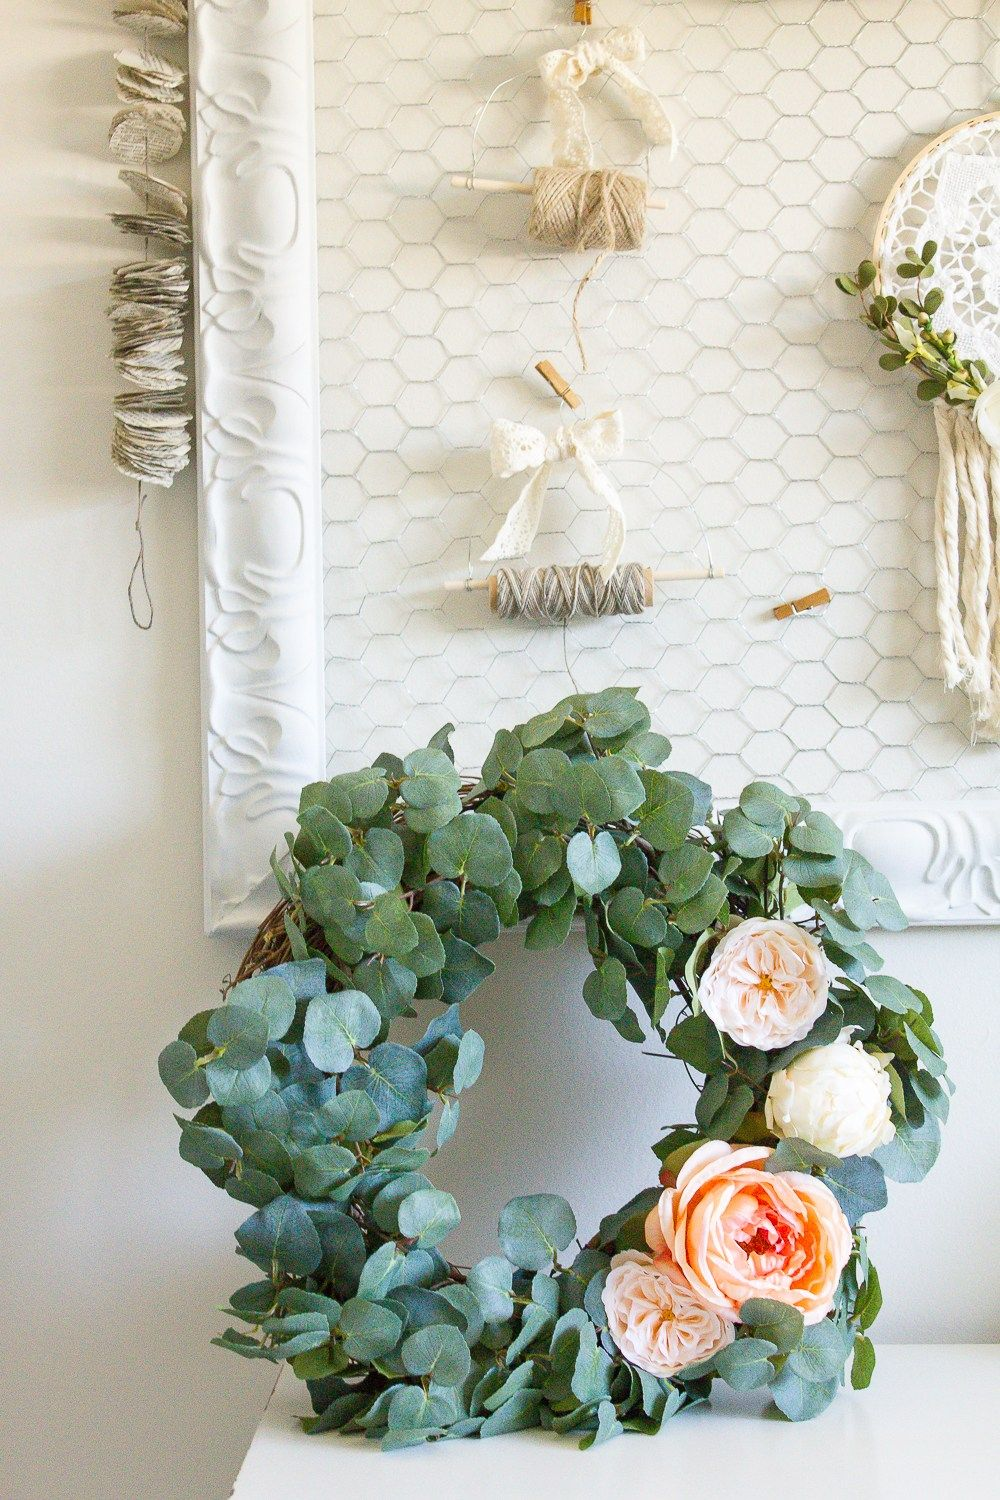 Farmhouse Home: How to Make your own DIY Eucalyptus Wreath ...